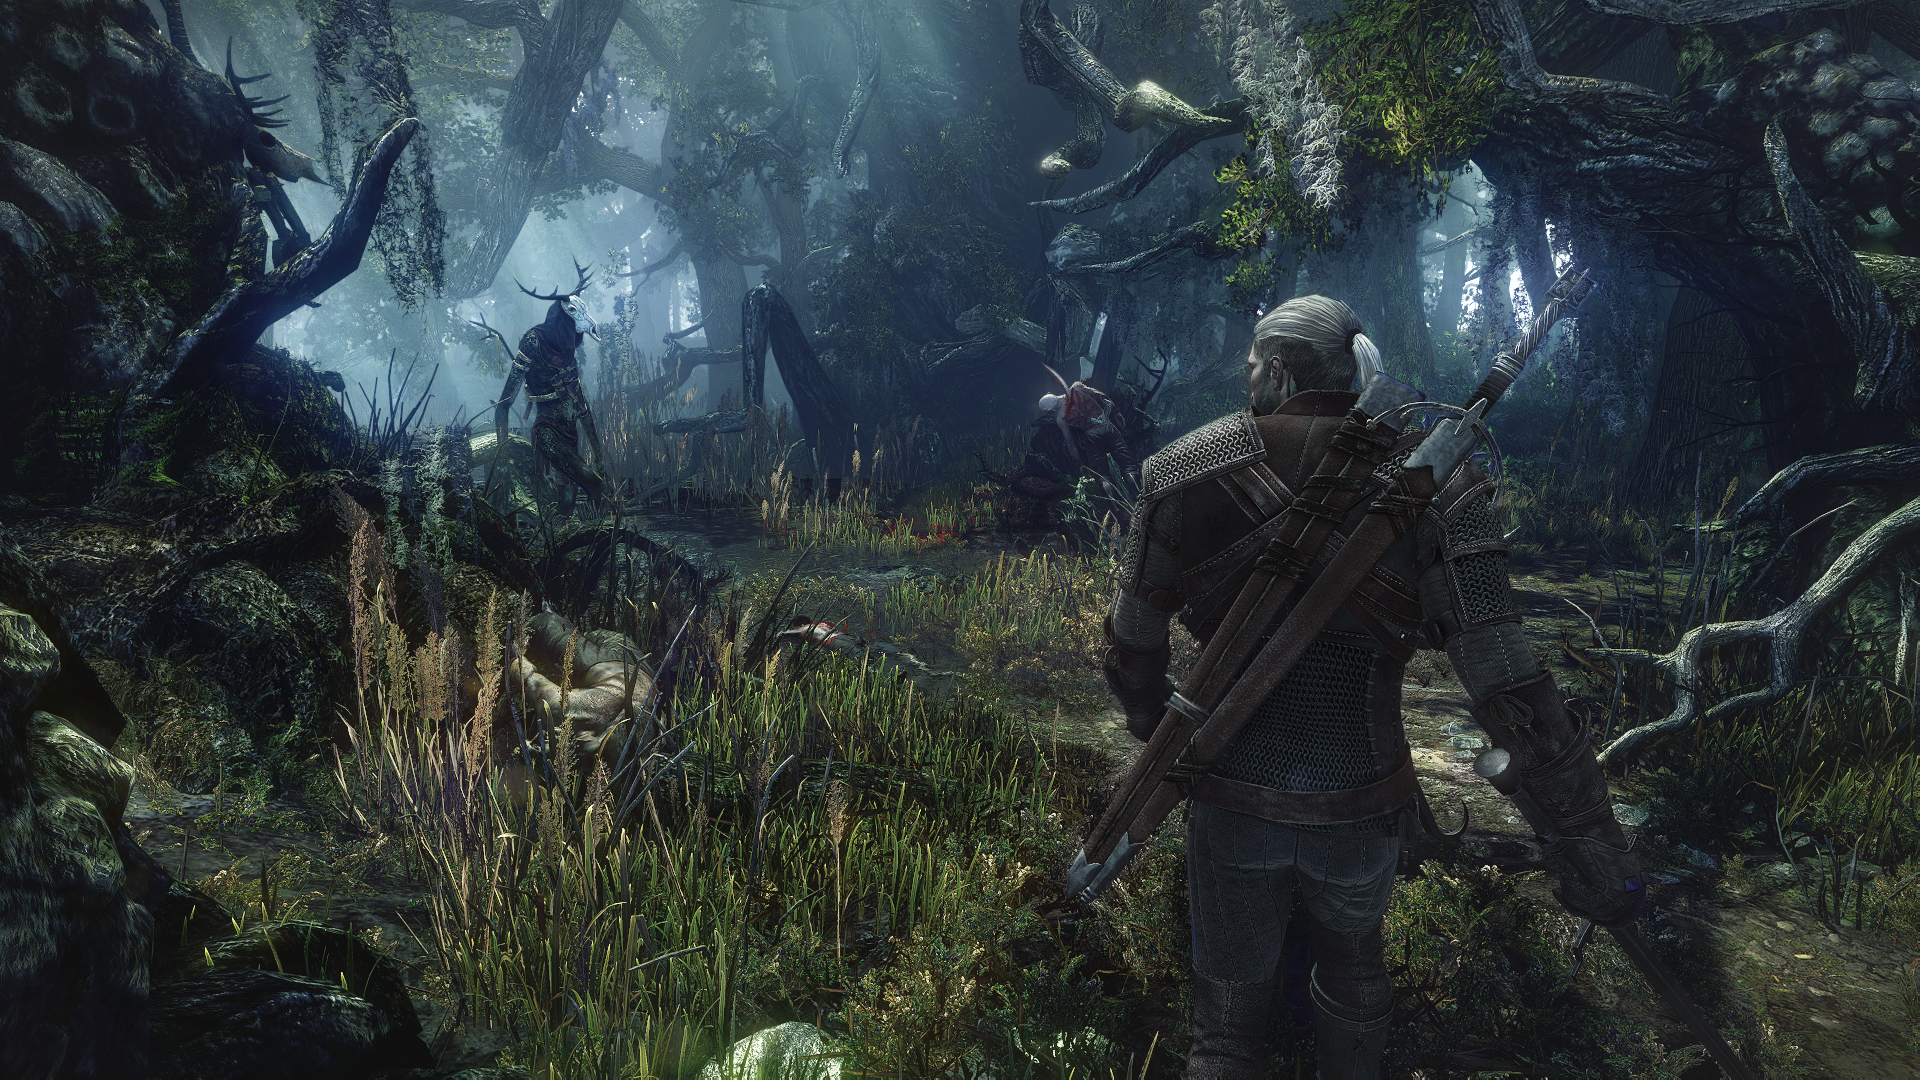 The Witcher 3 Is A Skyrim Killer Preview The Koalition